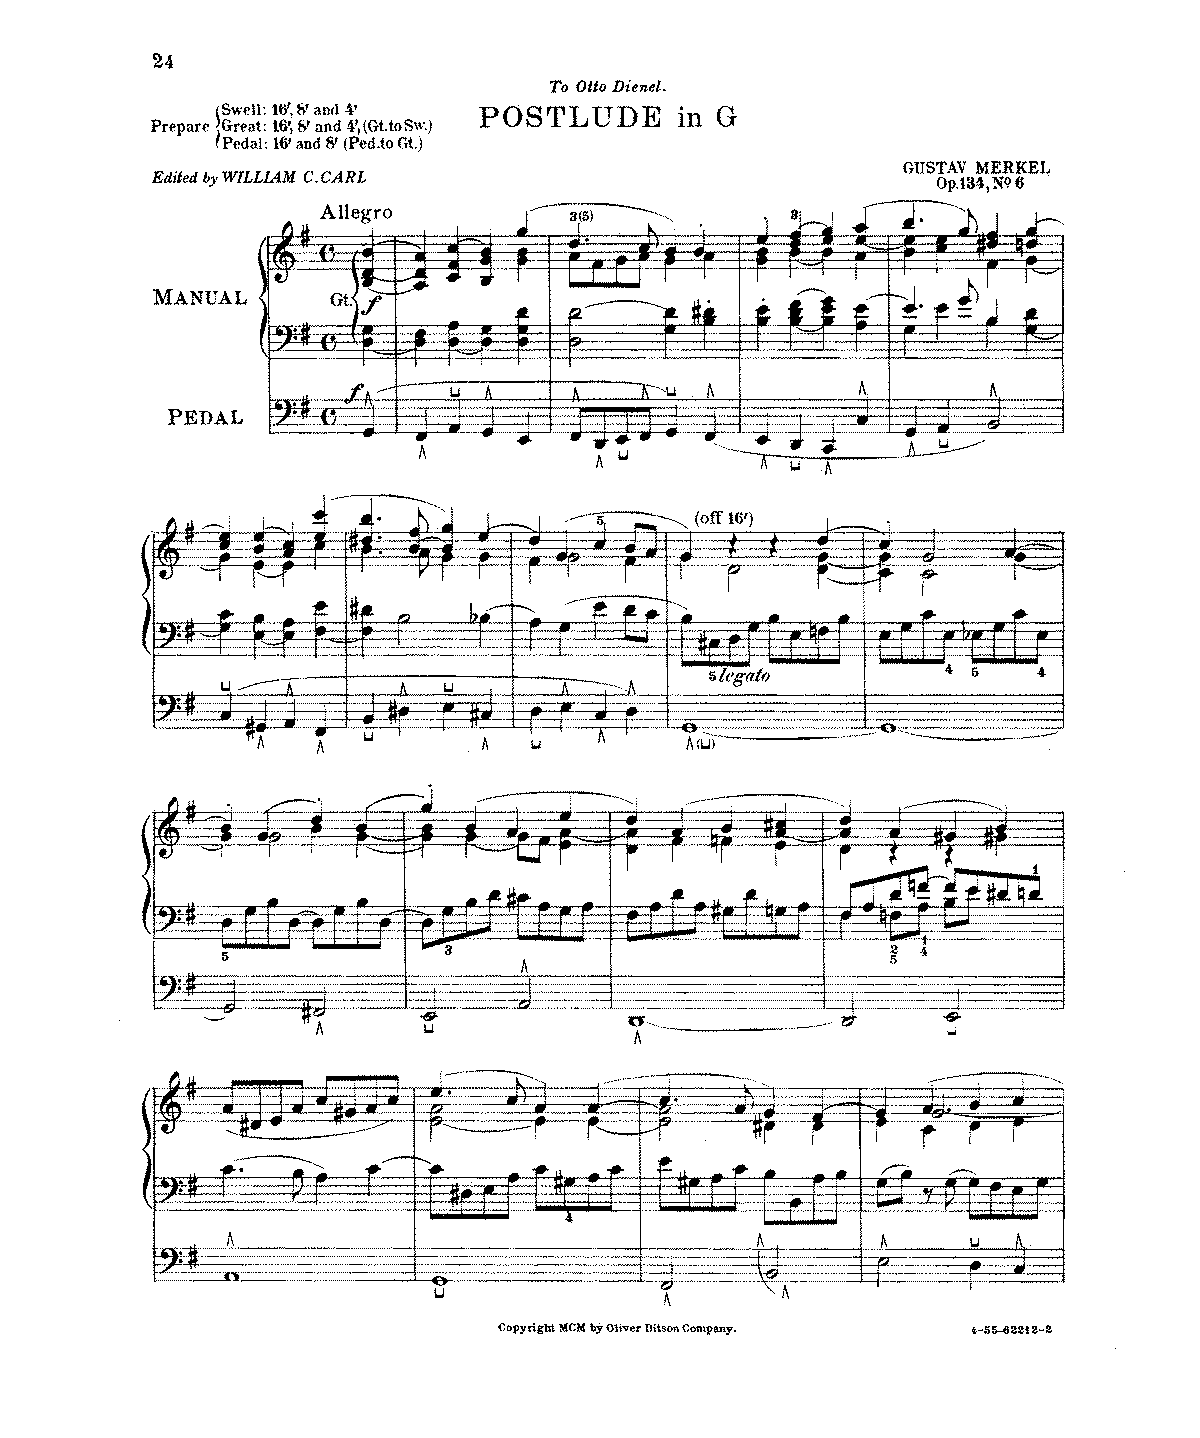 PMLP77183-Merkel - Postlude in G major Op.134 No.6.pdf